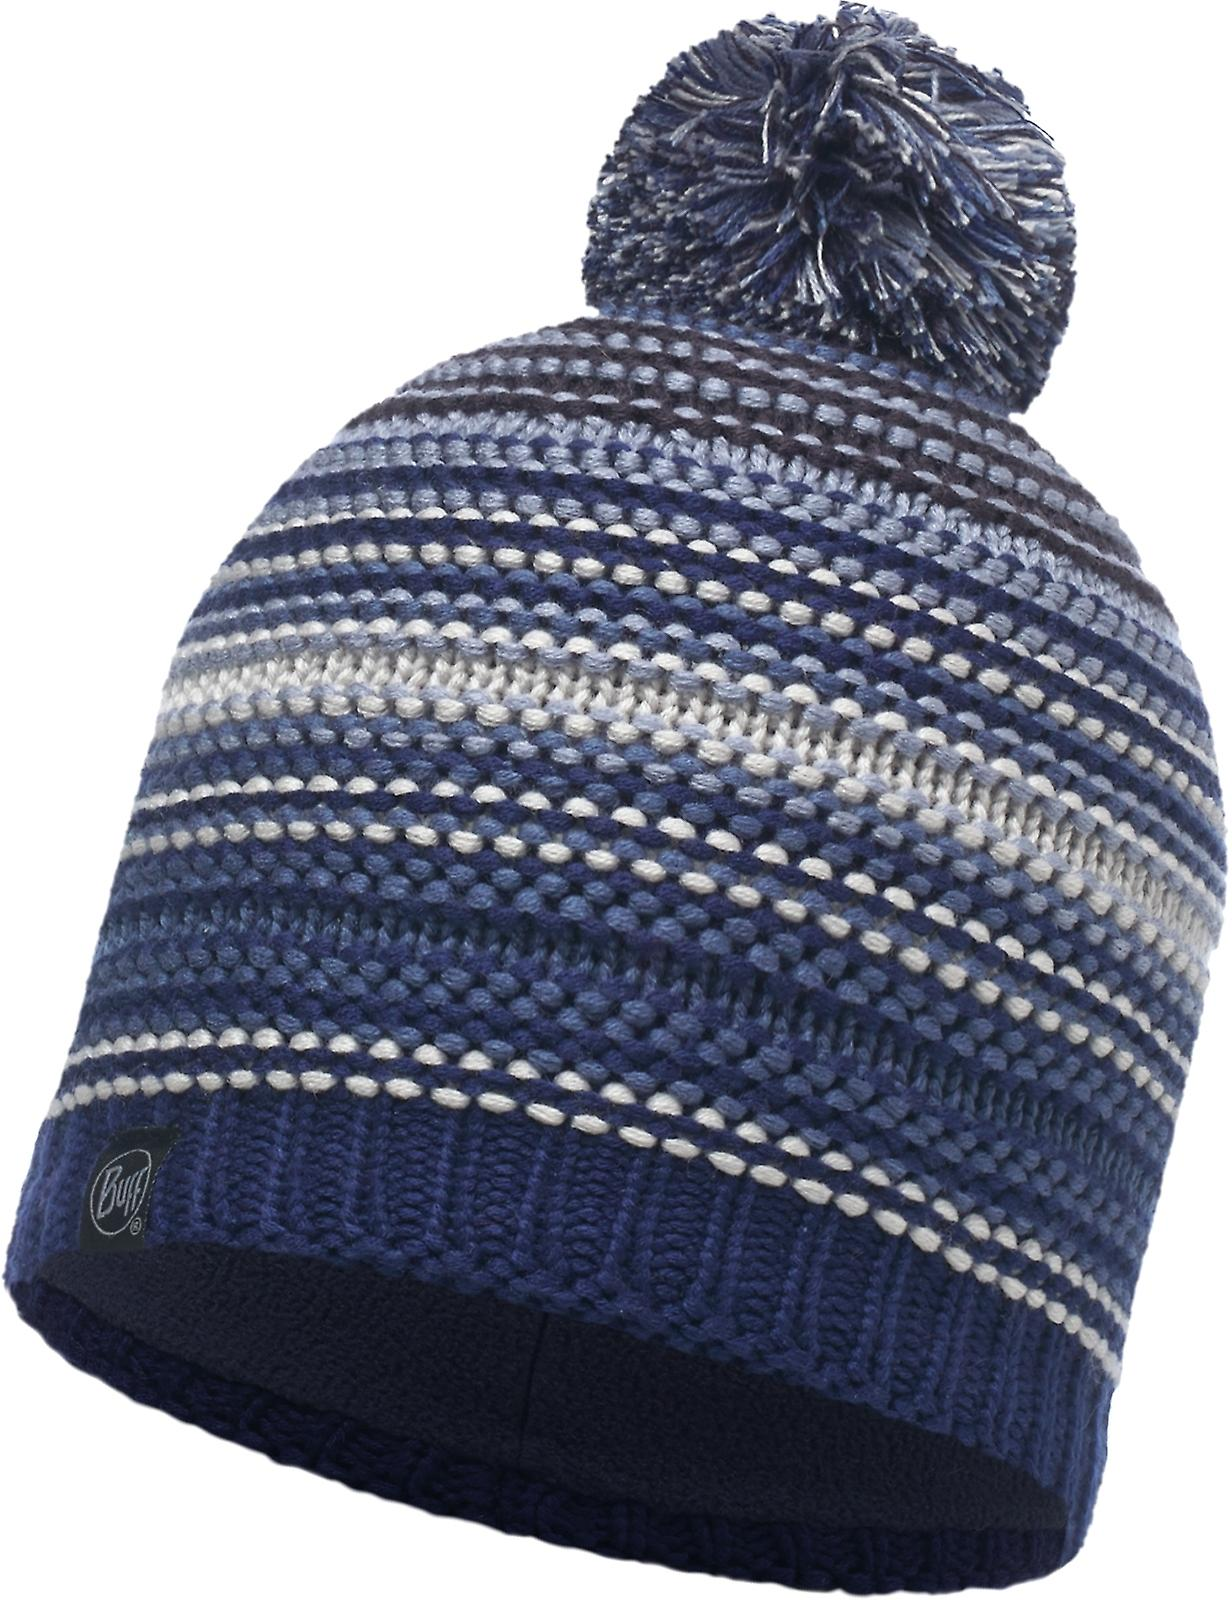 Buff Neper Knitted Bobble Hat in Blue Ink